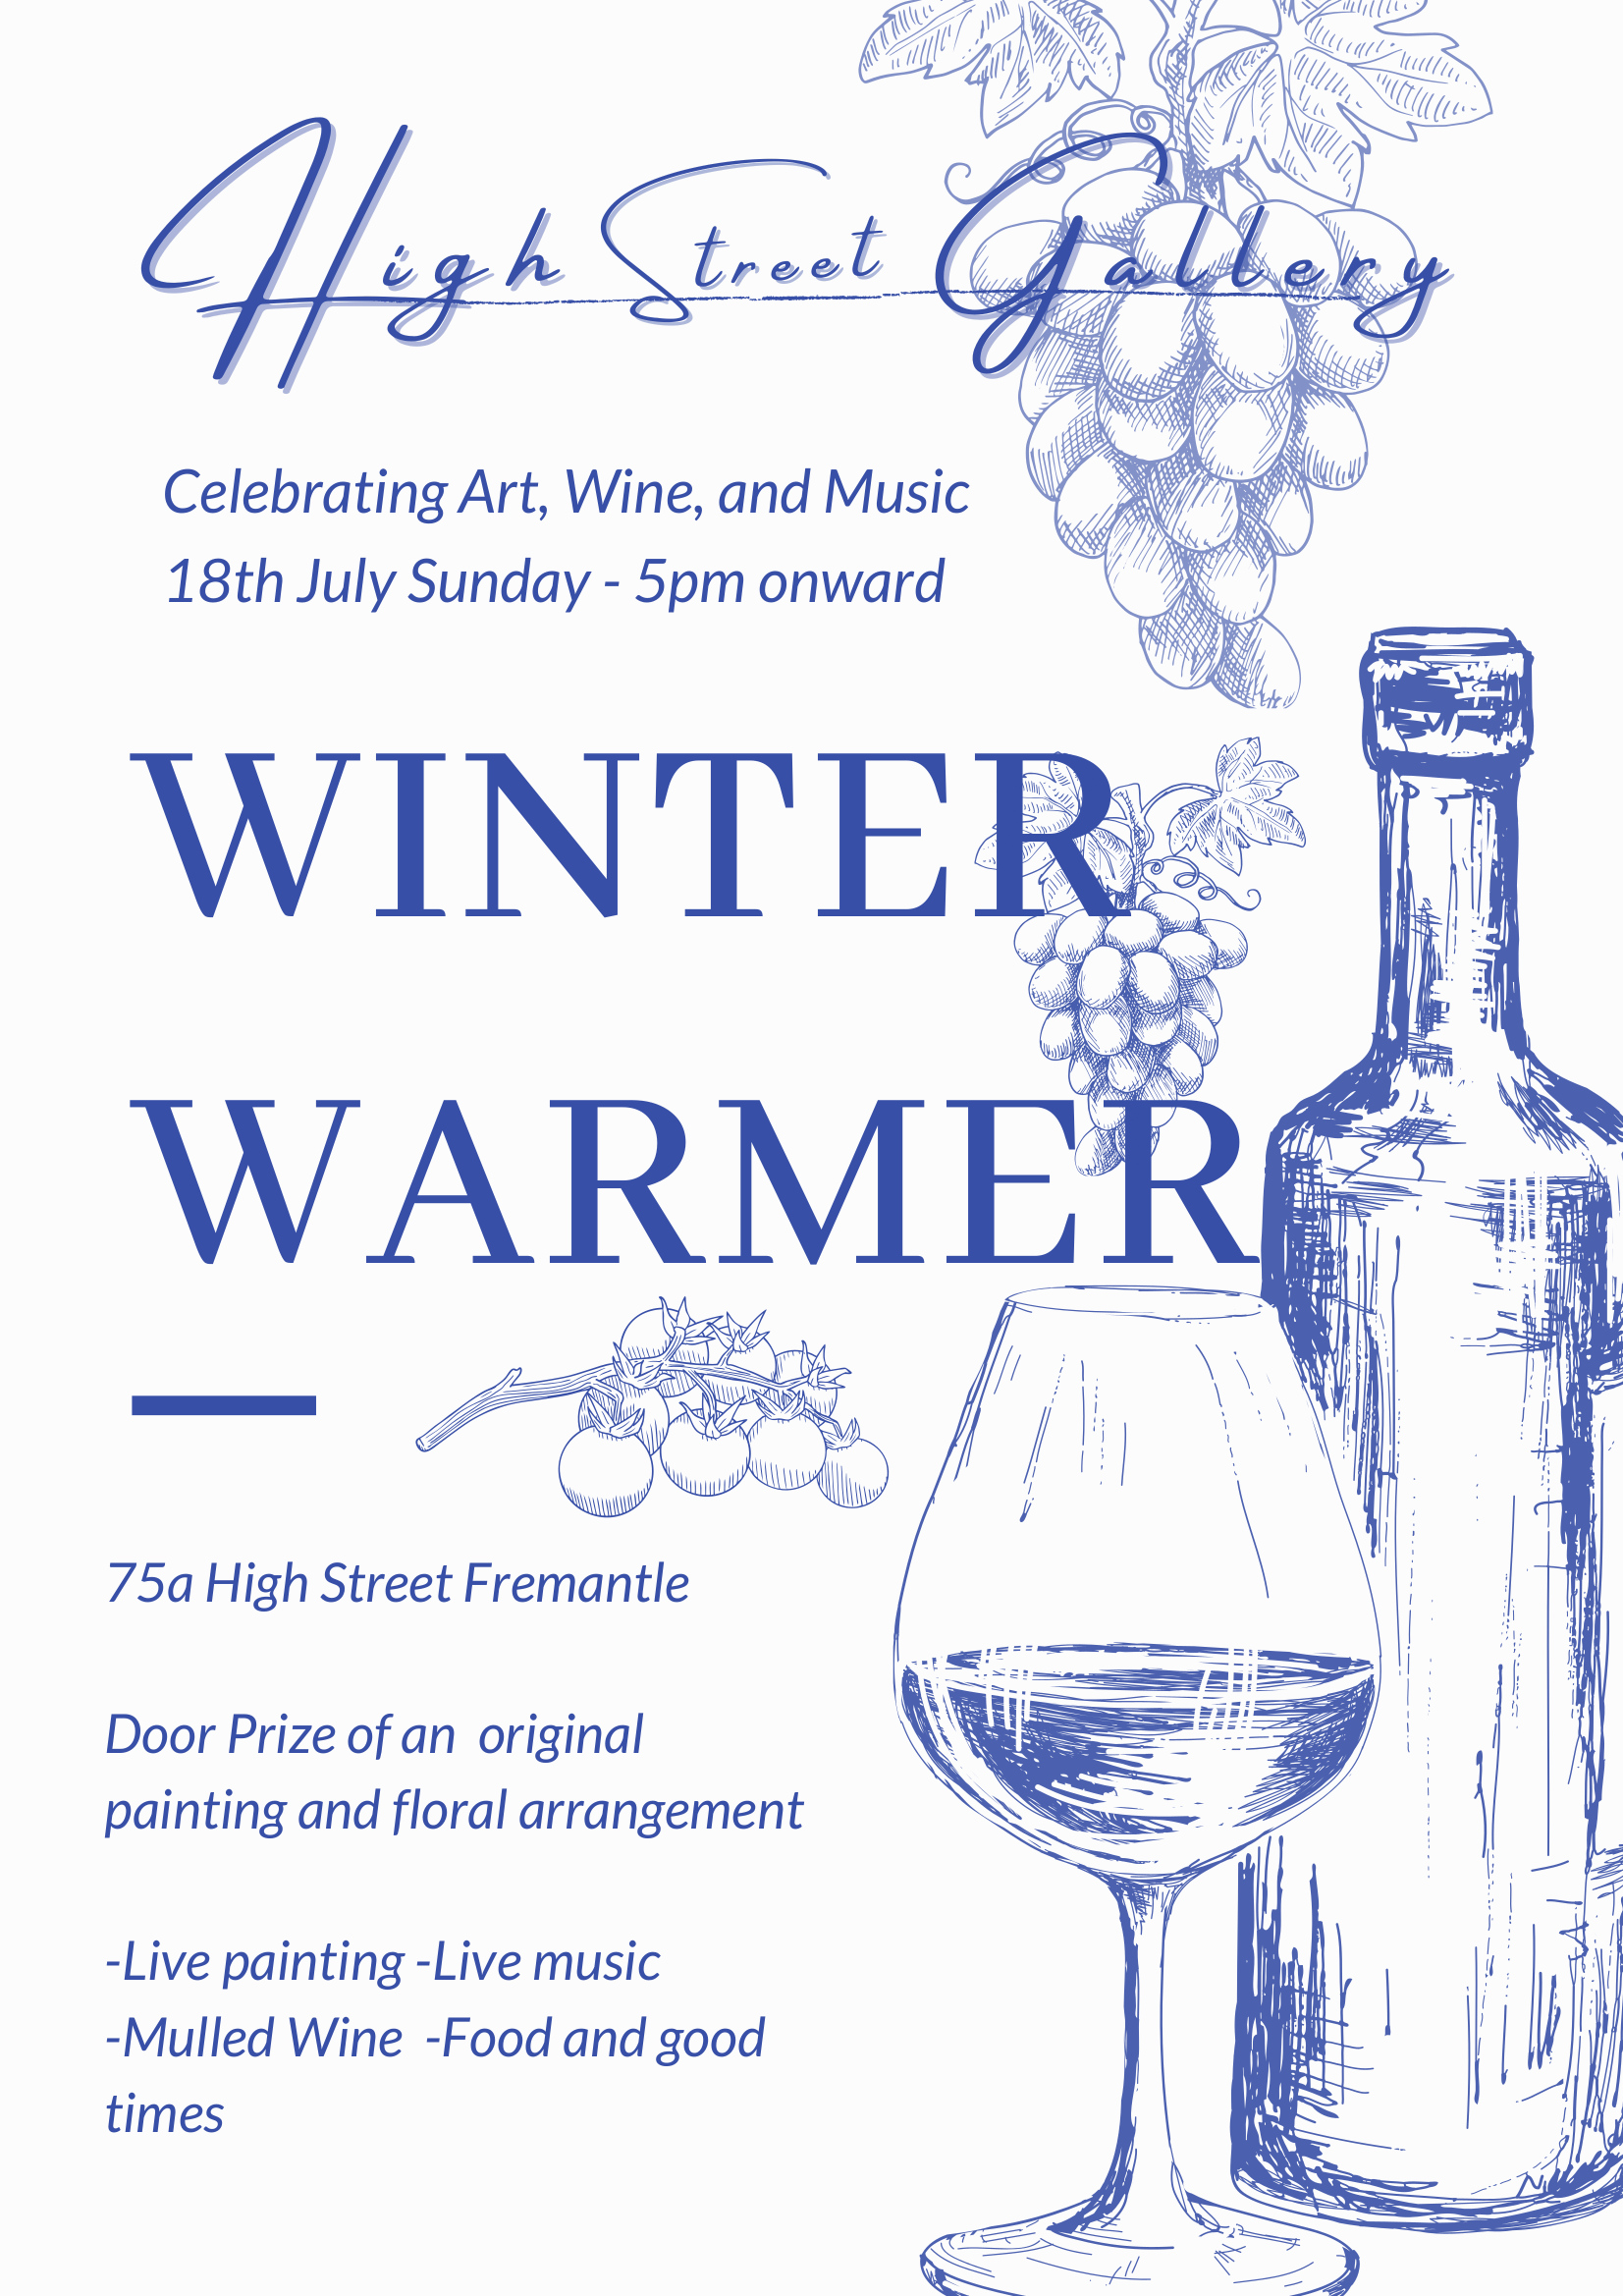 High Street Gallery 'Winter Warmer' is on this Sunday the 18th of July - New paintings on display along with live music and mulled wine!